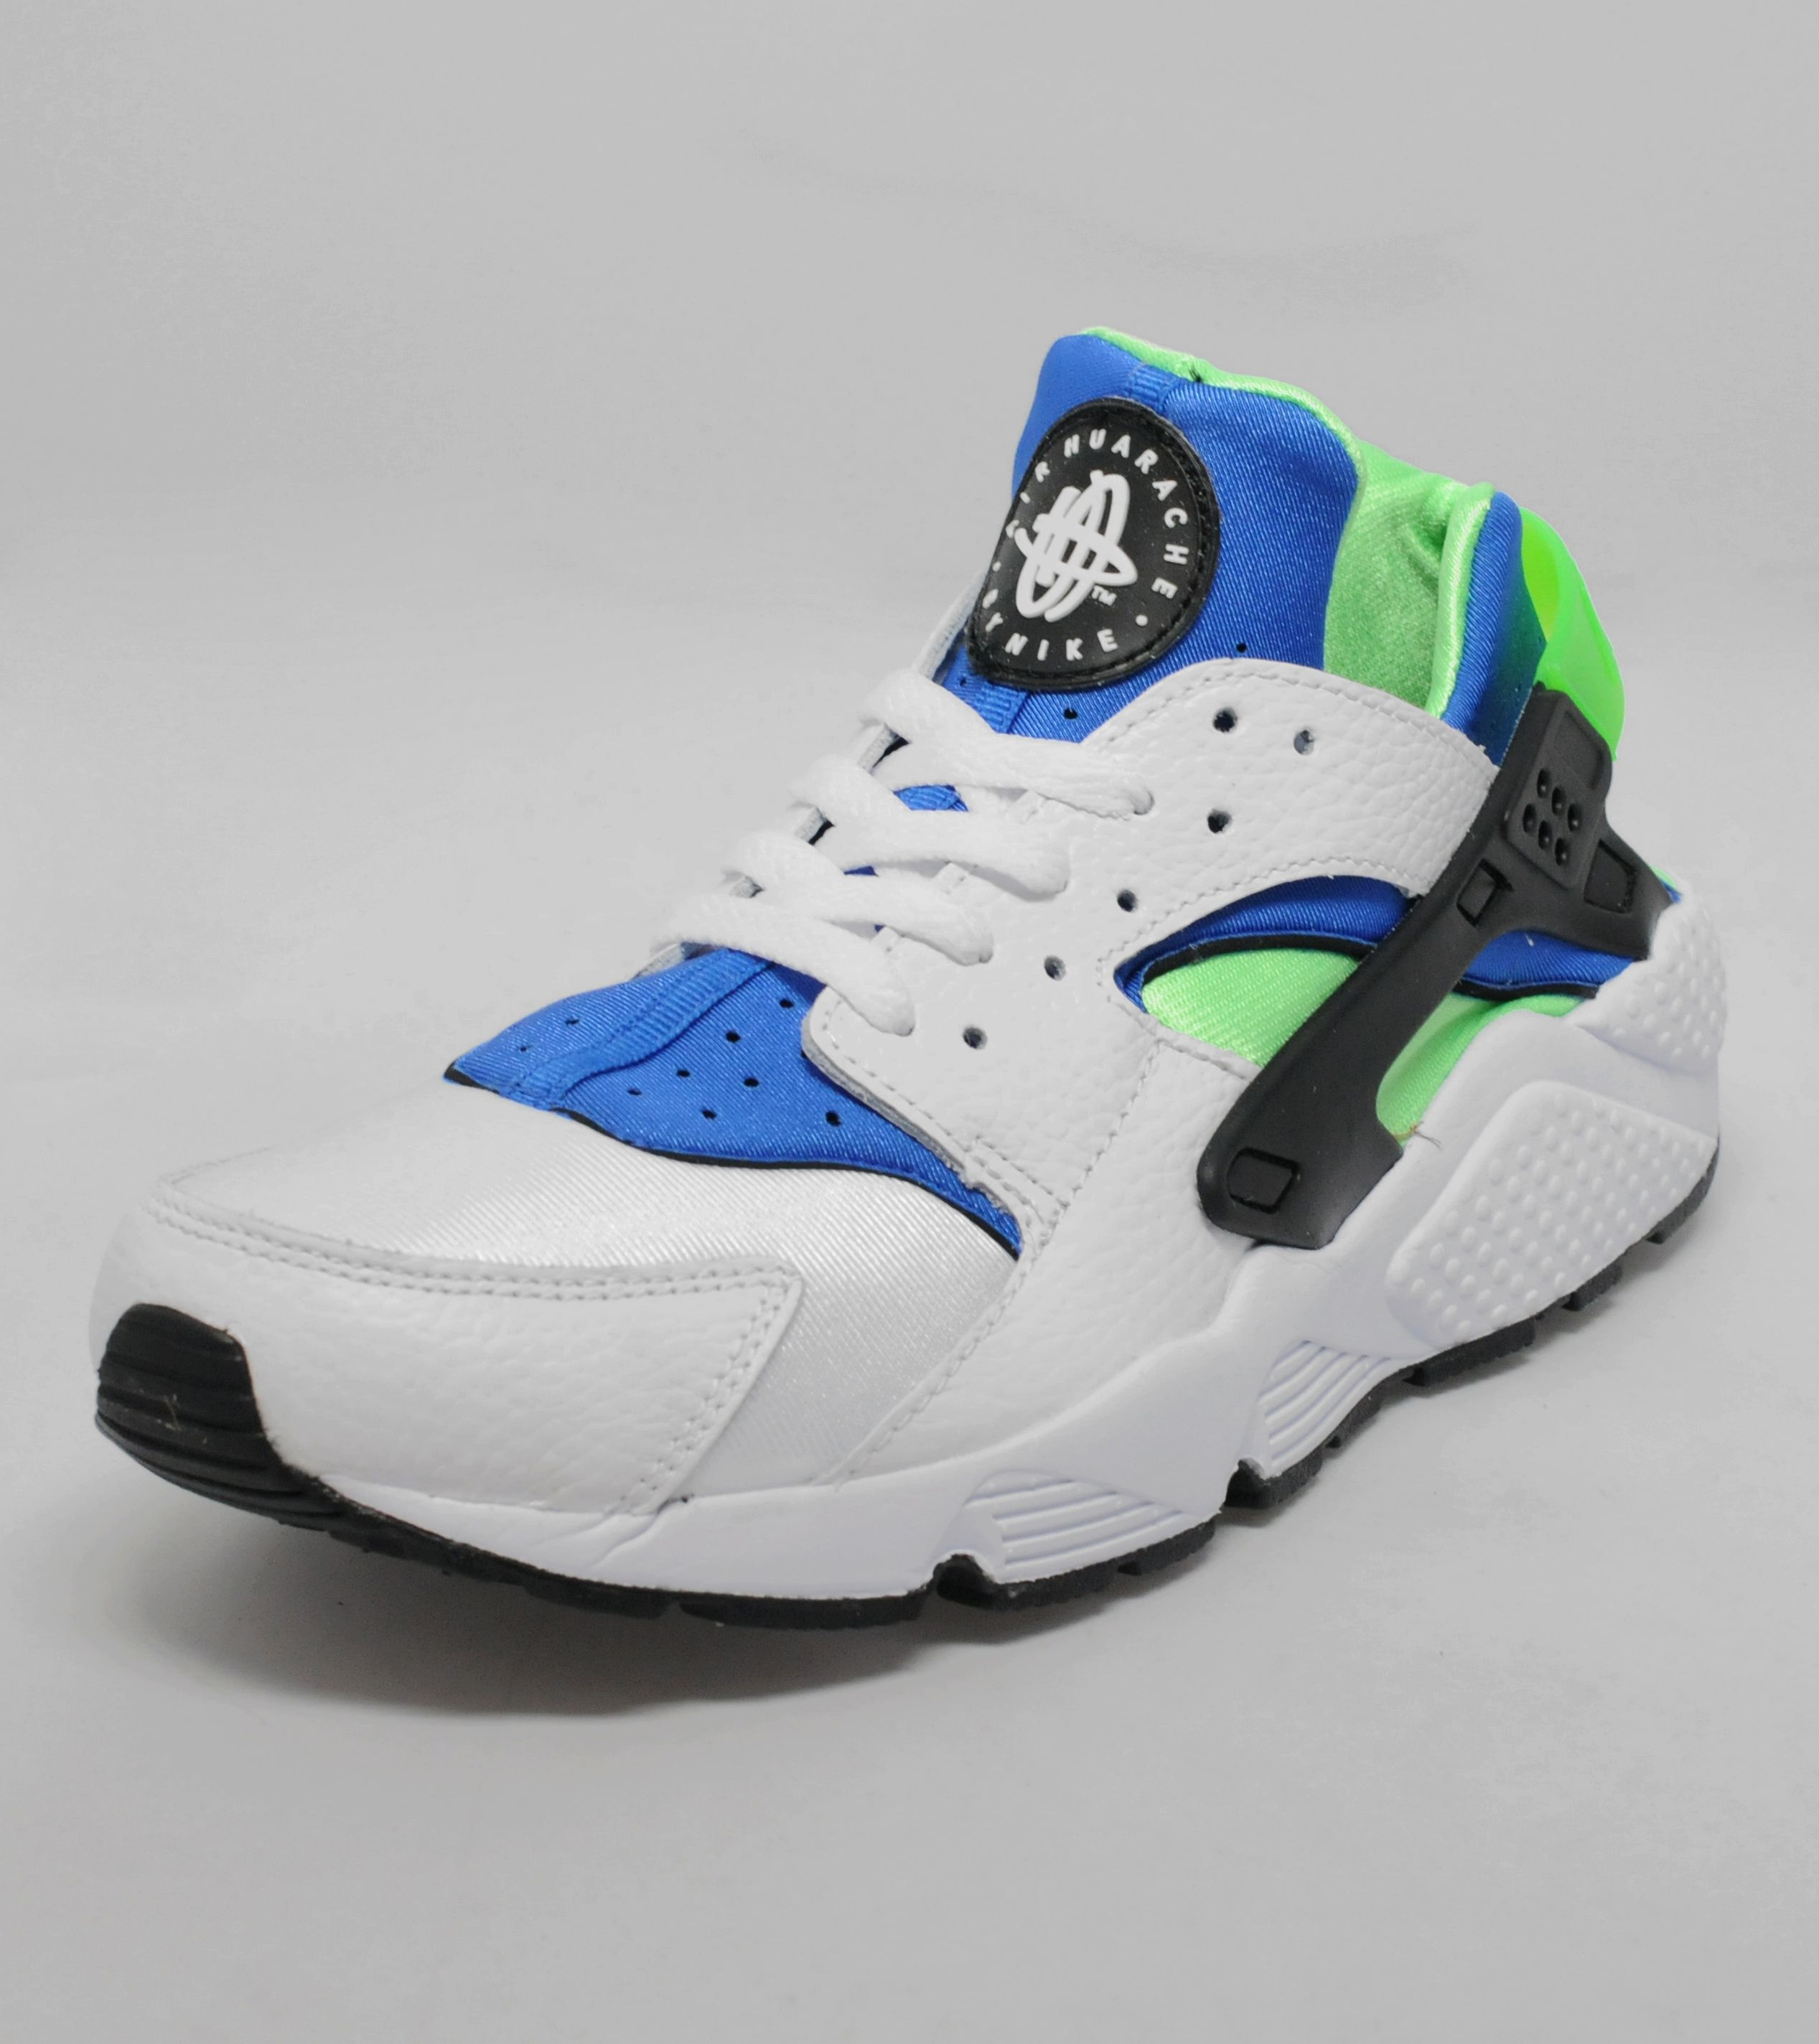 a185fa9b234ce ... having appeared in a bevy of colorways over the last few months tinker  hatfields air huarache has c31cf 7e231  norway nike air huarache scream  green ...